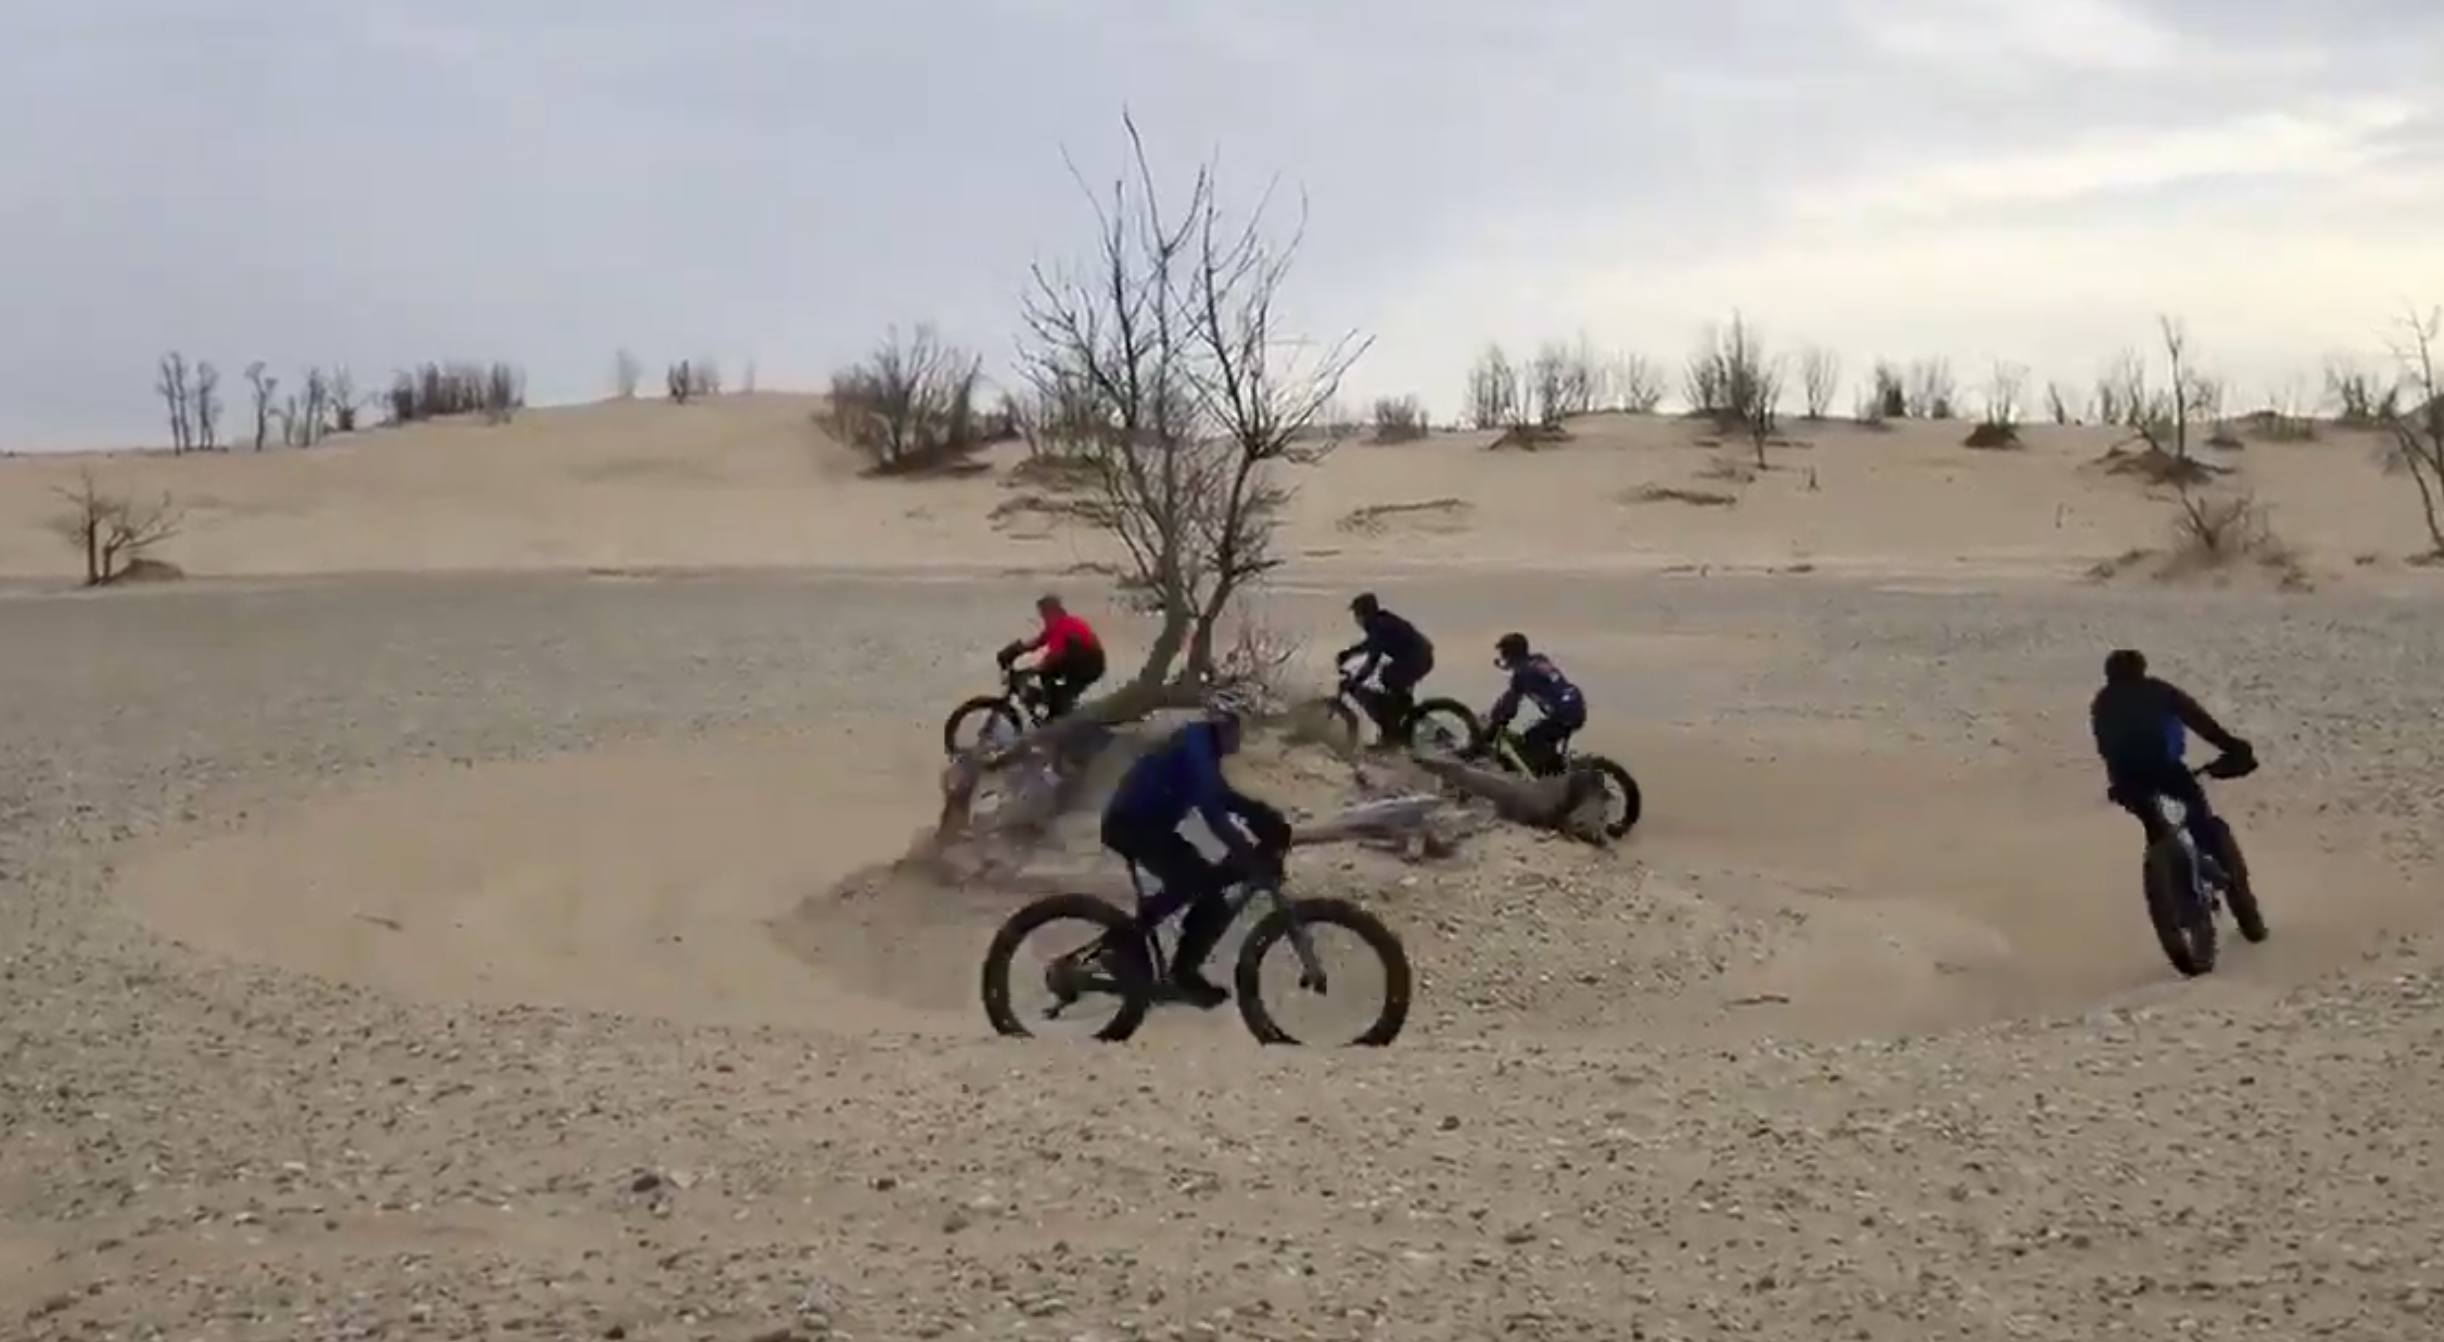 Silver Lake Sand Dunes ride - Saturday Afternoon